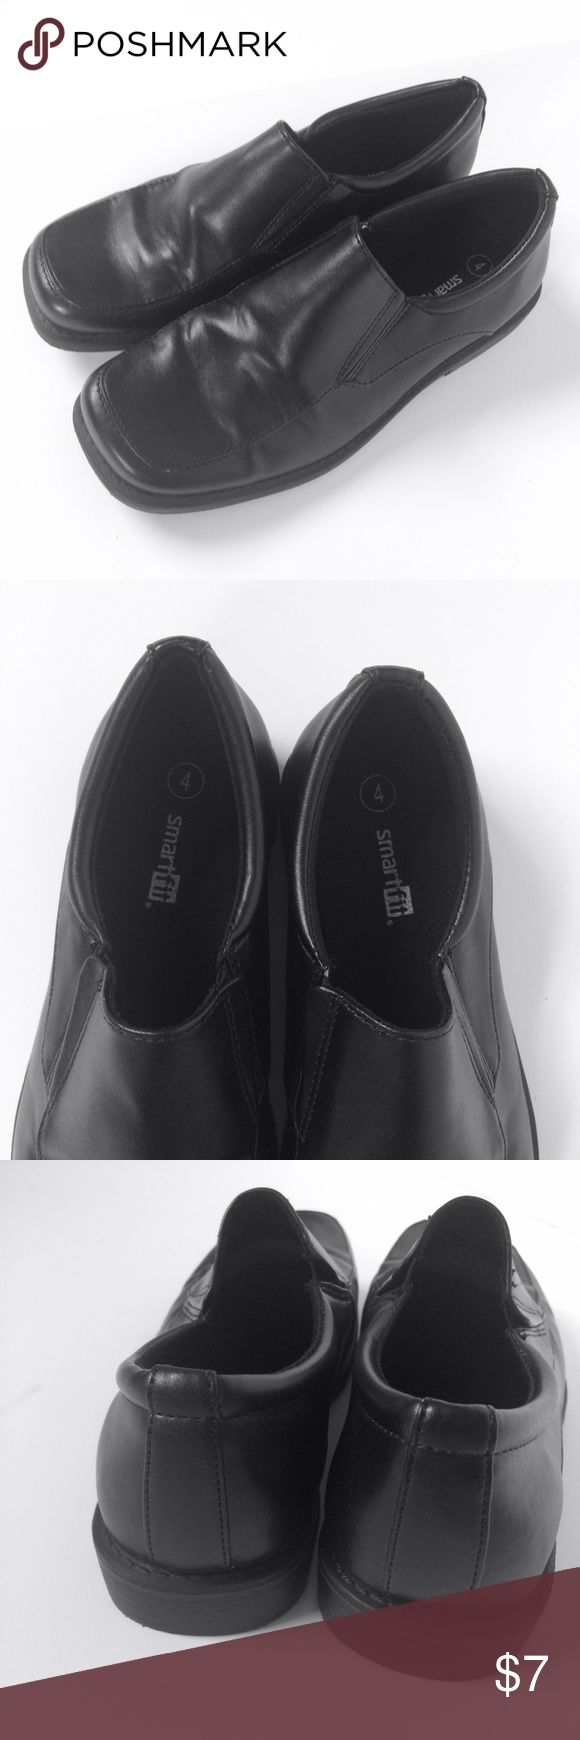 Black Smartfit Dress Shoes Size 4 Pre-owned in good condition.  Black older boys dress shoes size 4. Smartfit Shoes Dress Shoes